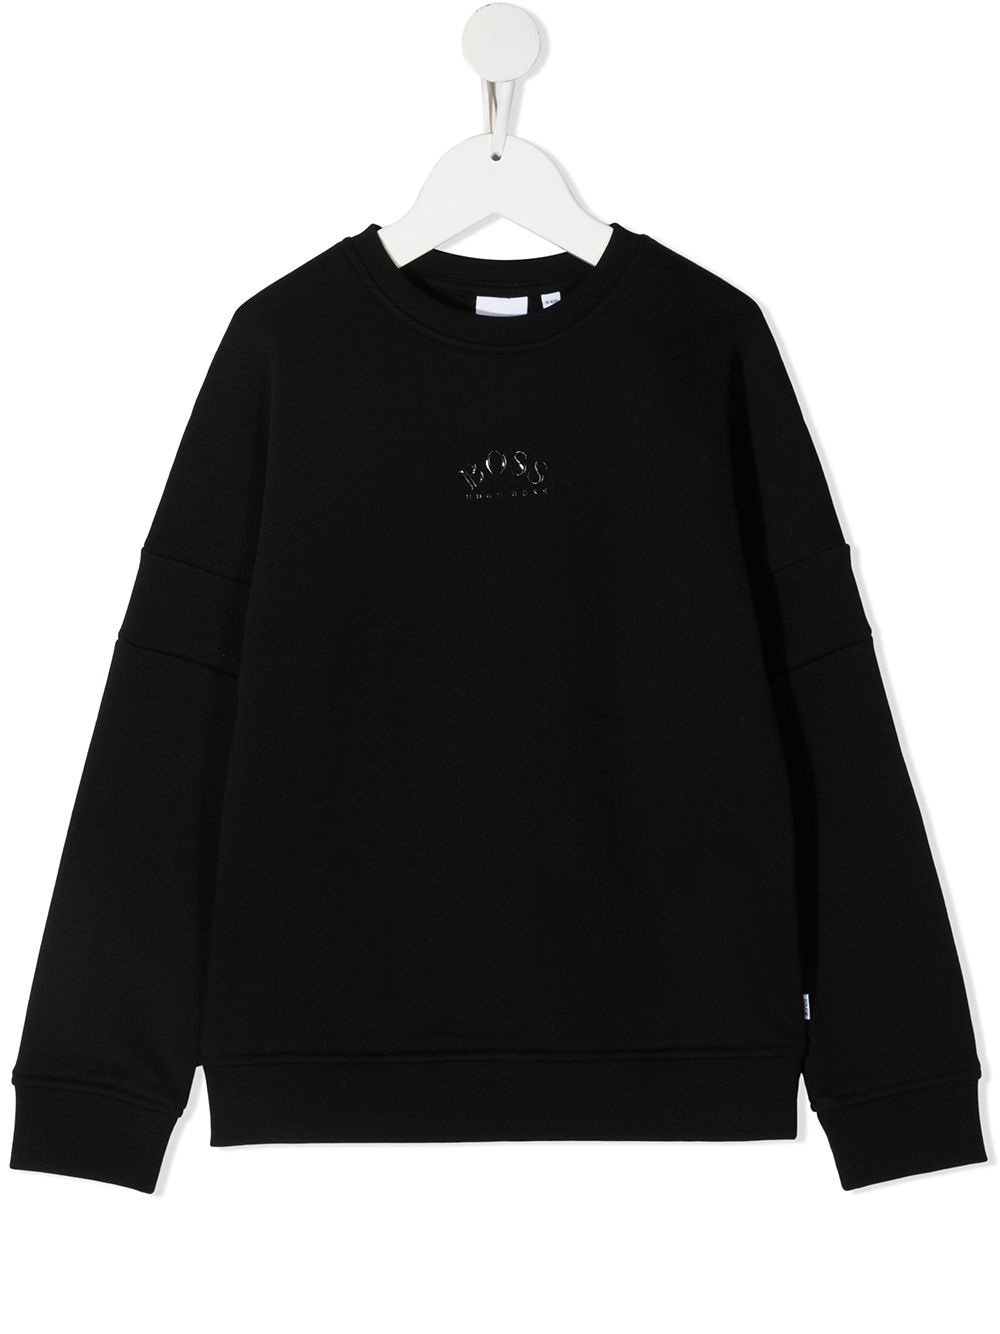 BOSS KIDS Curved Logo Sweatshirt Black